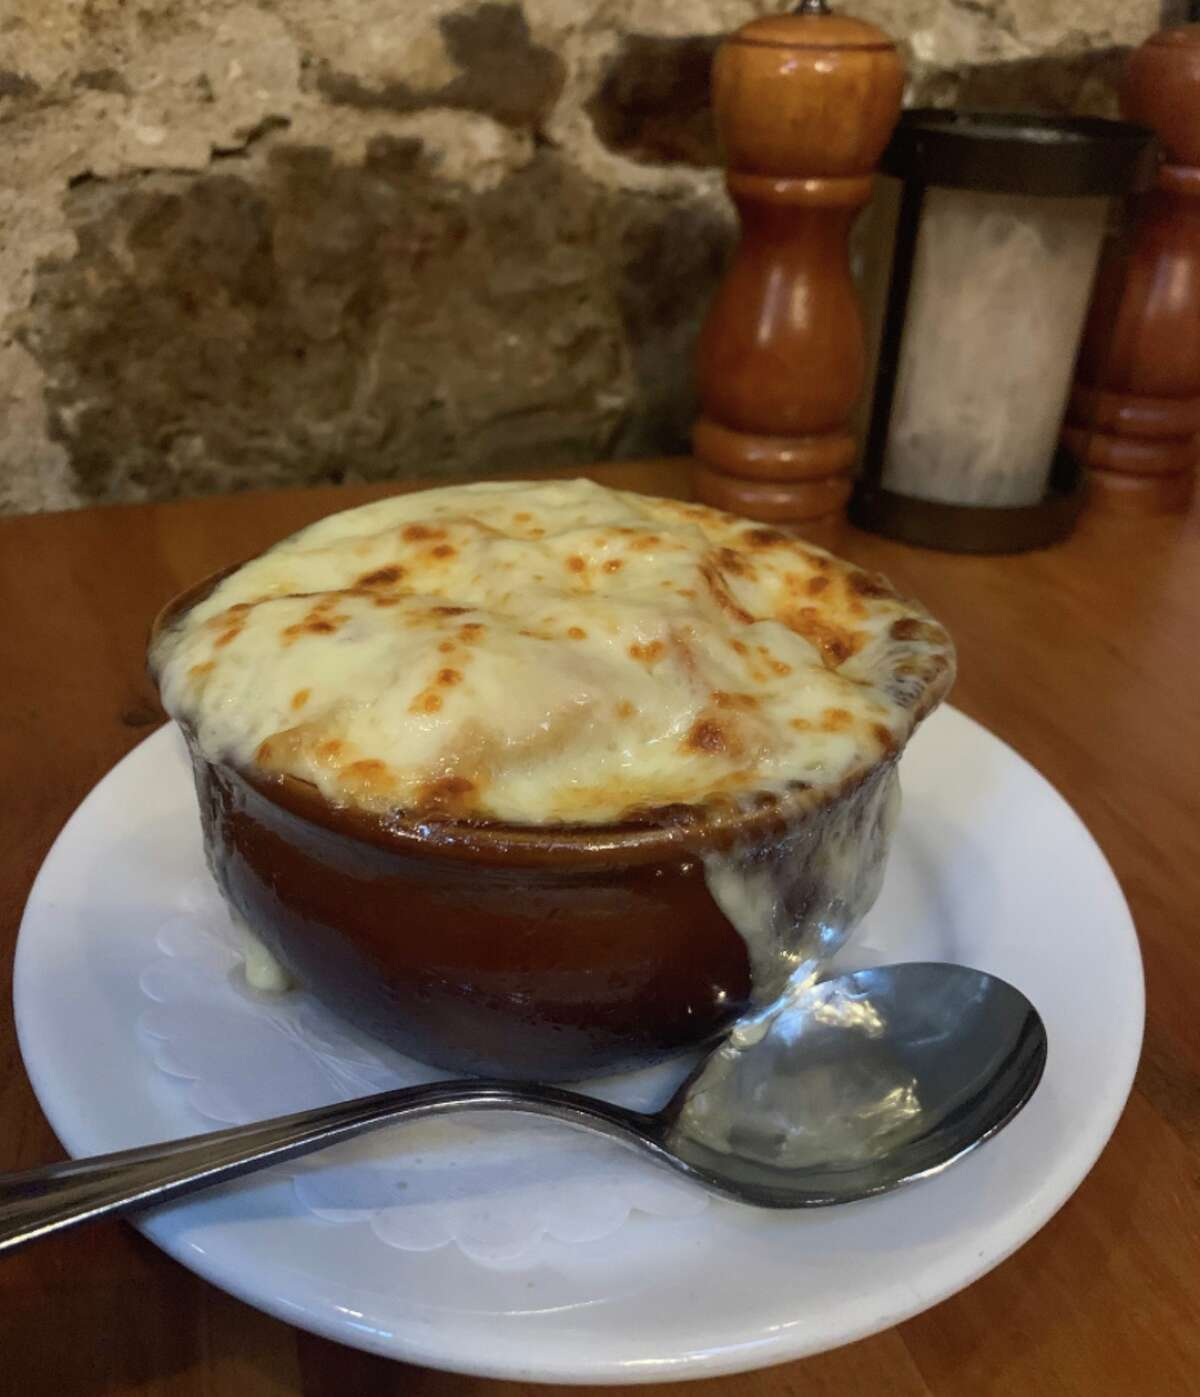 The French onion soup -- complete with a broiled cheesy top -- from the Olde Bryan Inn in Saratoga Springs.